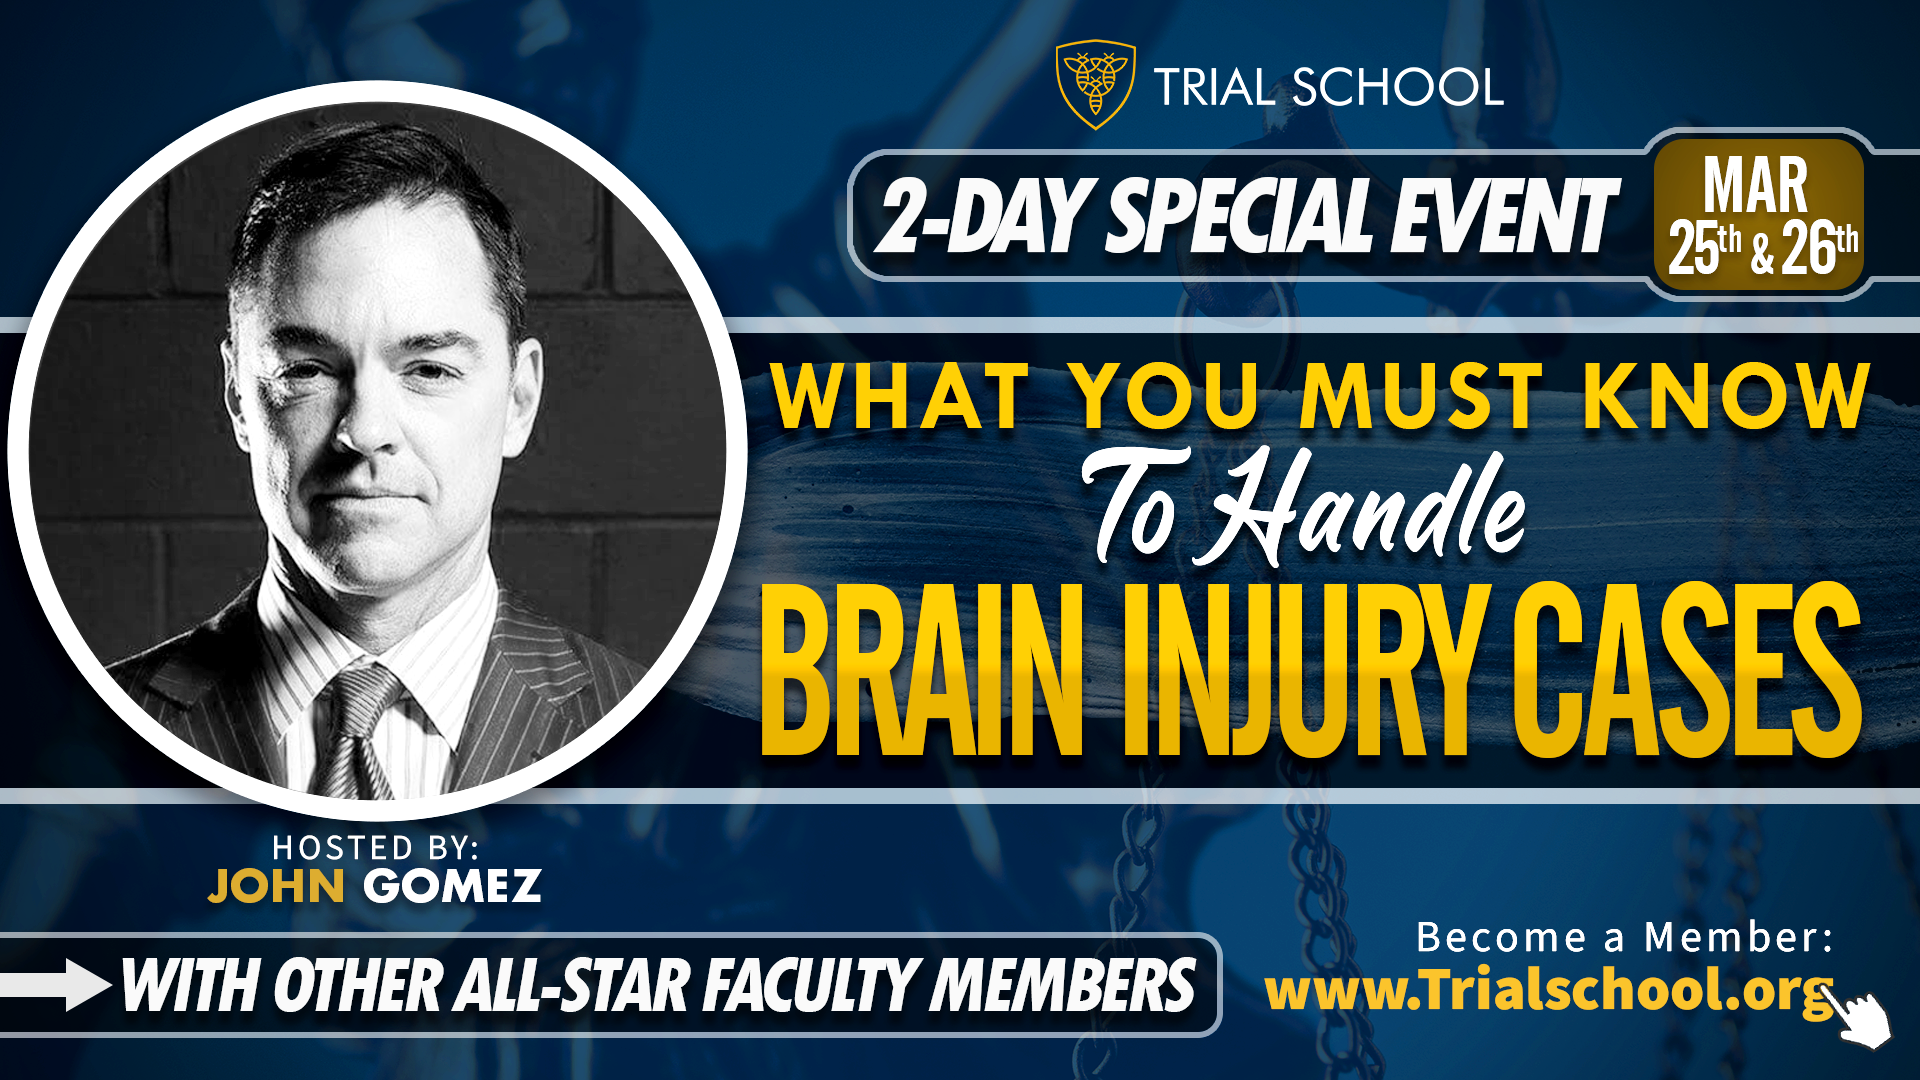 What You Must Know to Handle Brain Injury Cases presented by John Gomez